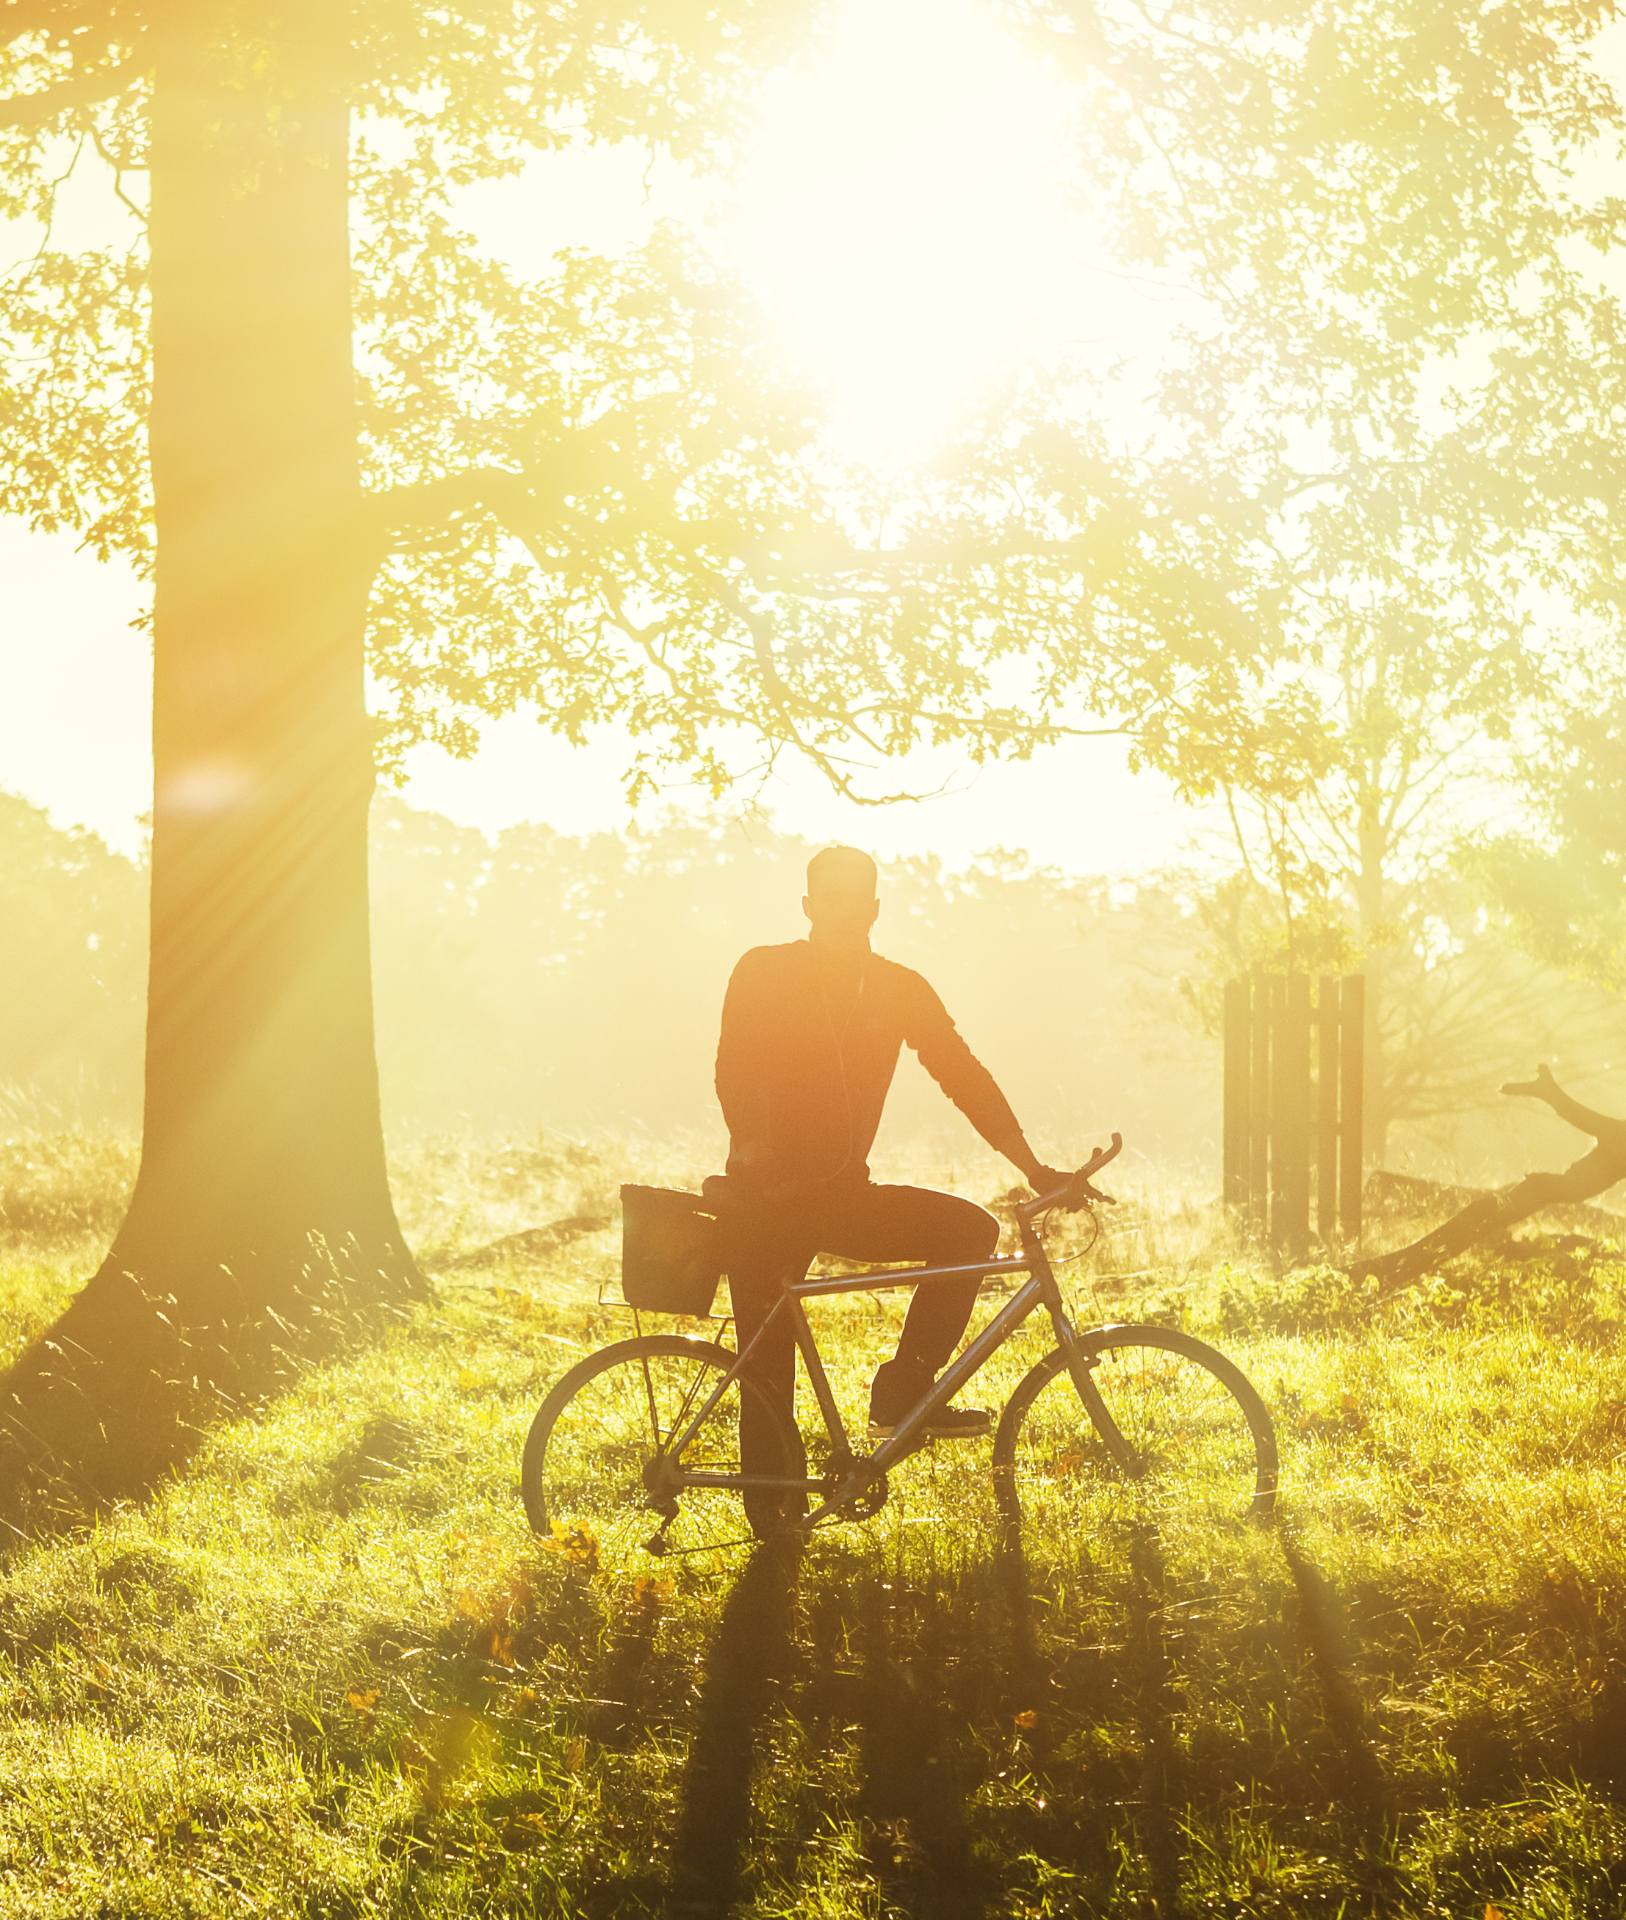 man in a forest with a bike